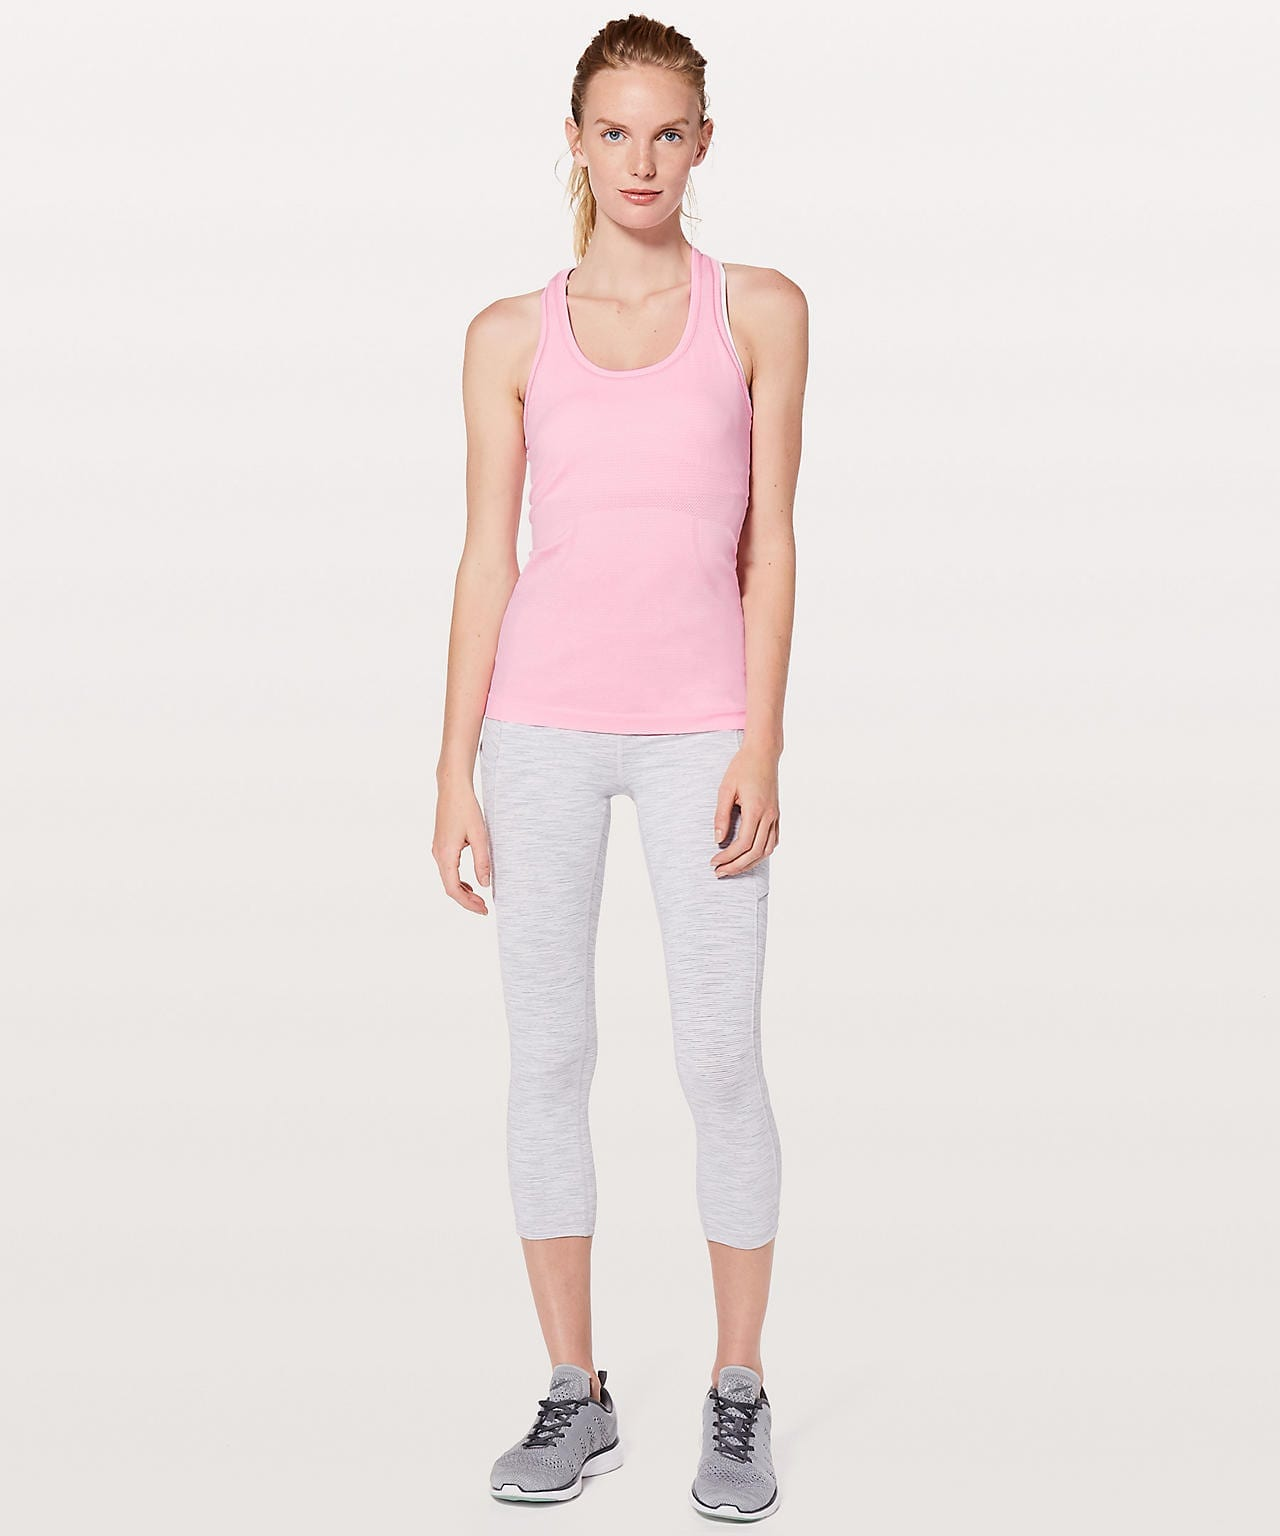 Swiftly Tech Racerback - Miami Pink